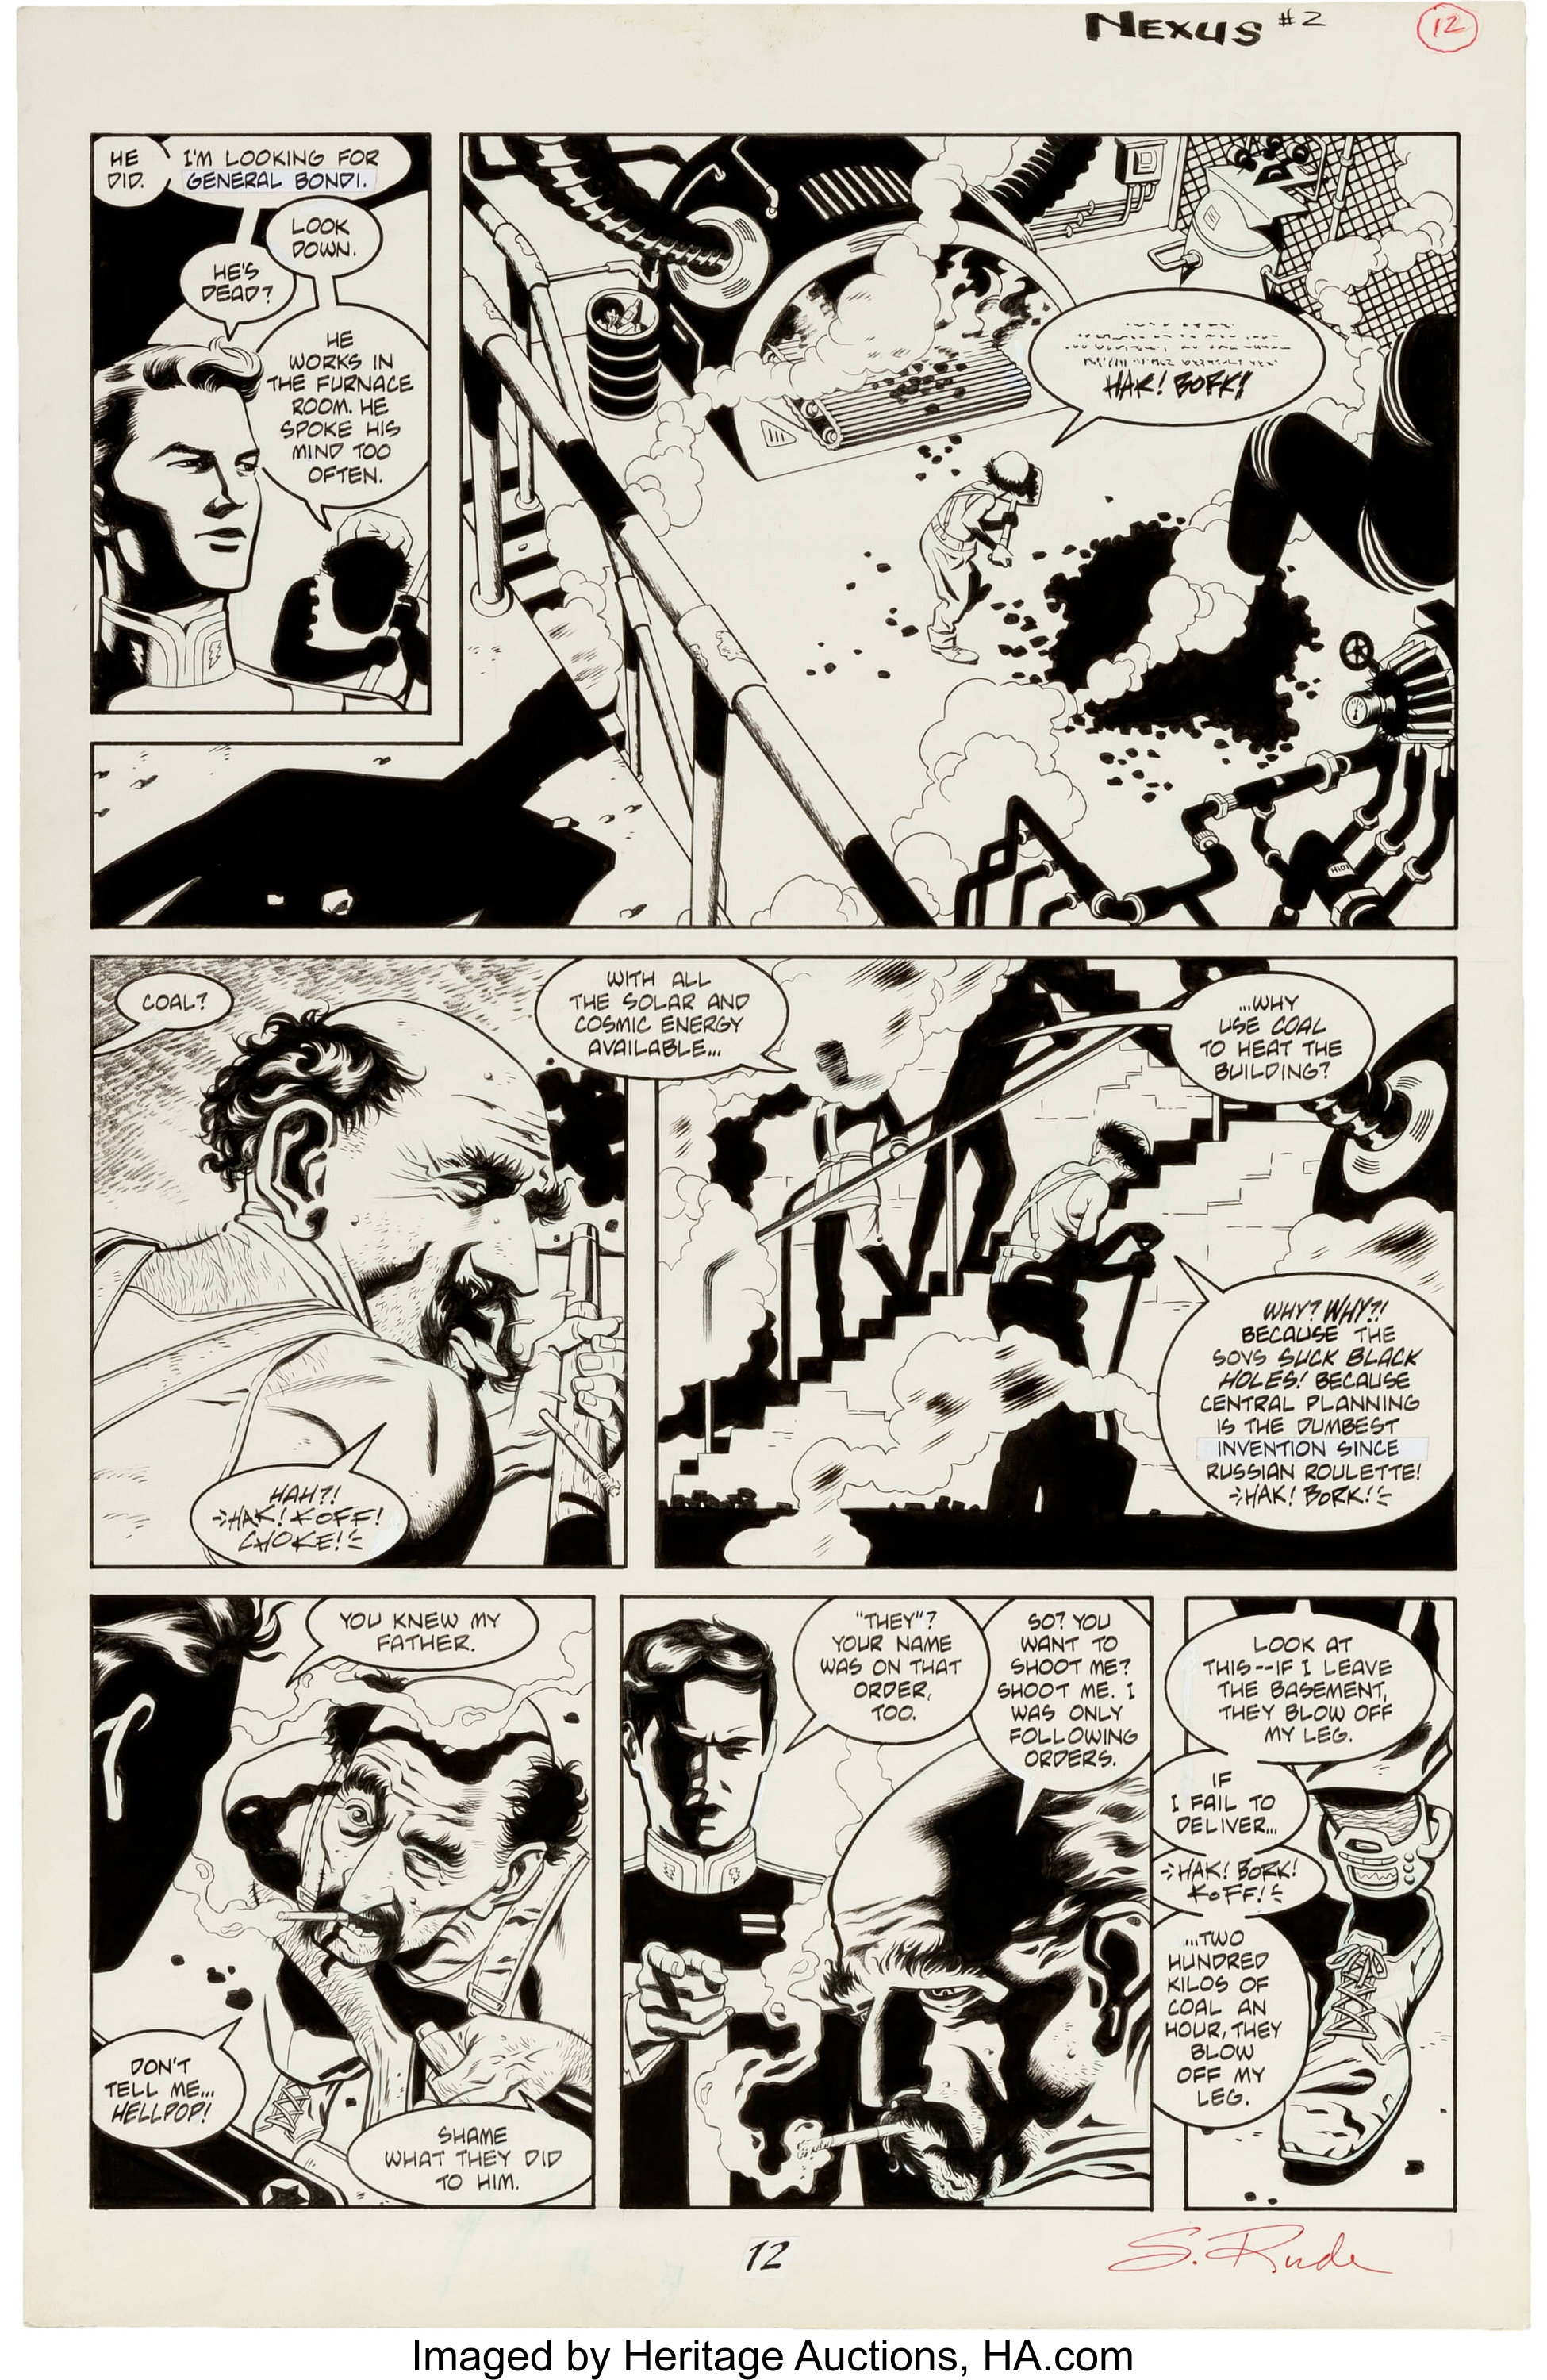 Steve Rude and Gary Martin Nexus: Executioner's Song #2 Story Page